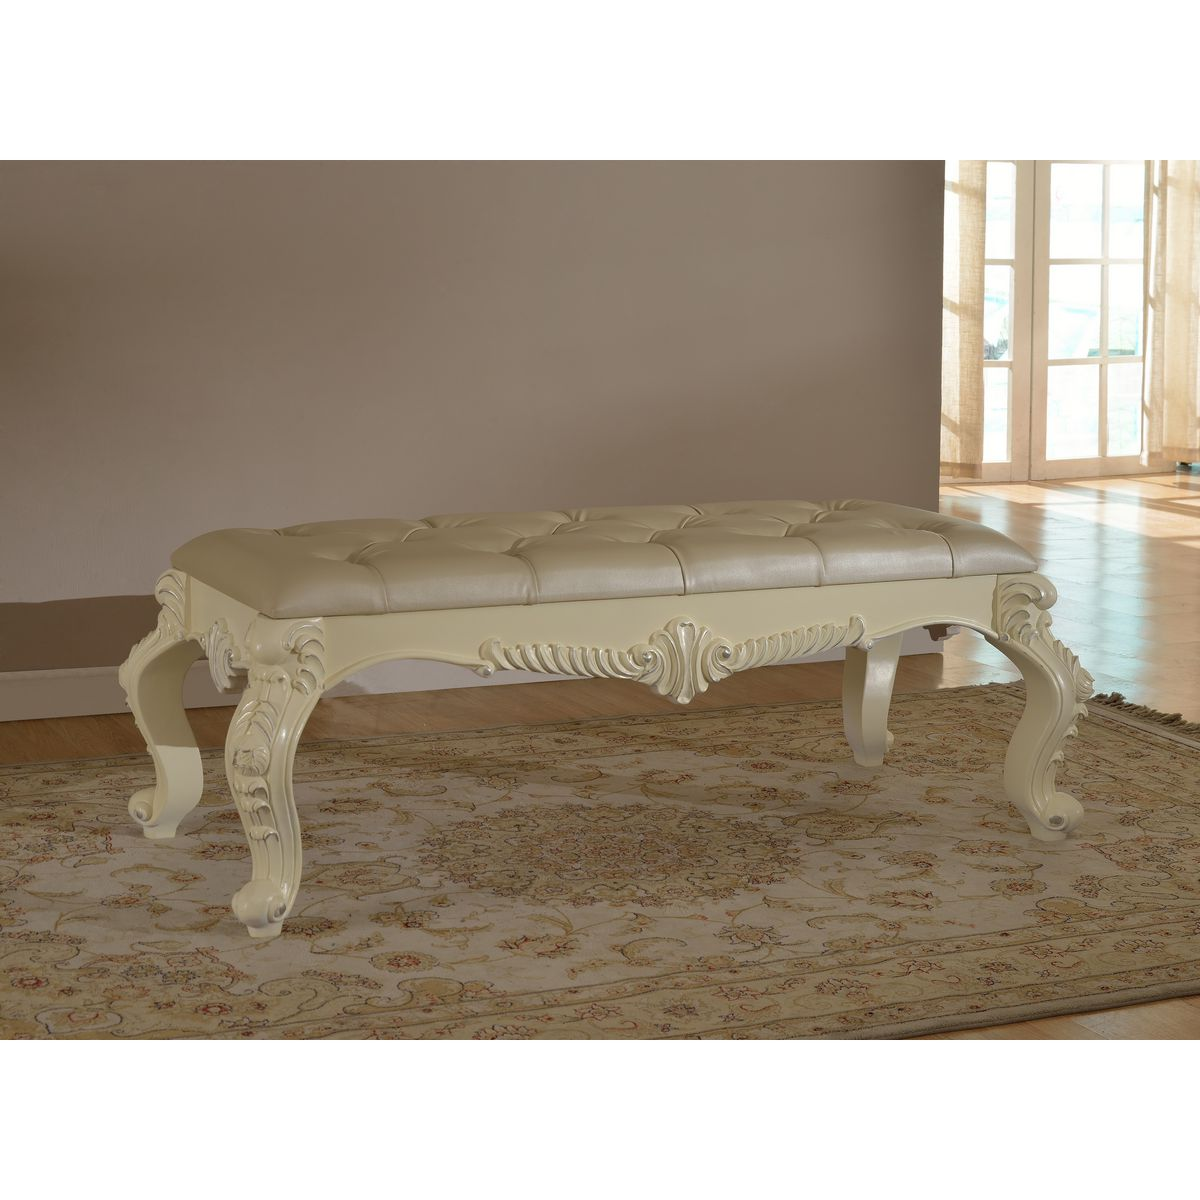 White Tufted Bench Coaster White Faux Leather Bench Chrome Legs Tufted Bench Medium Size